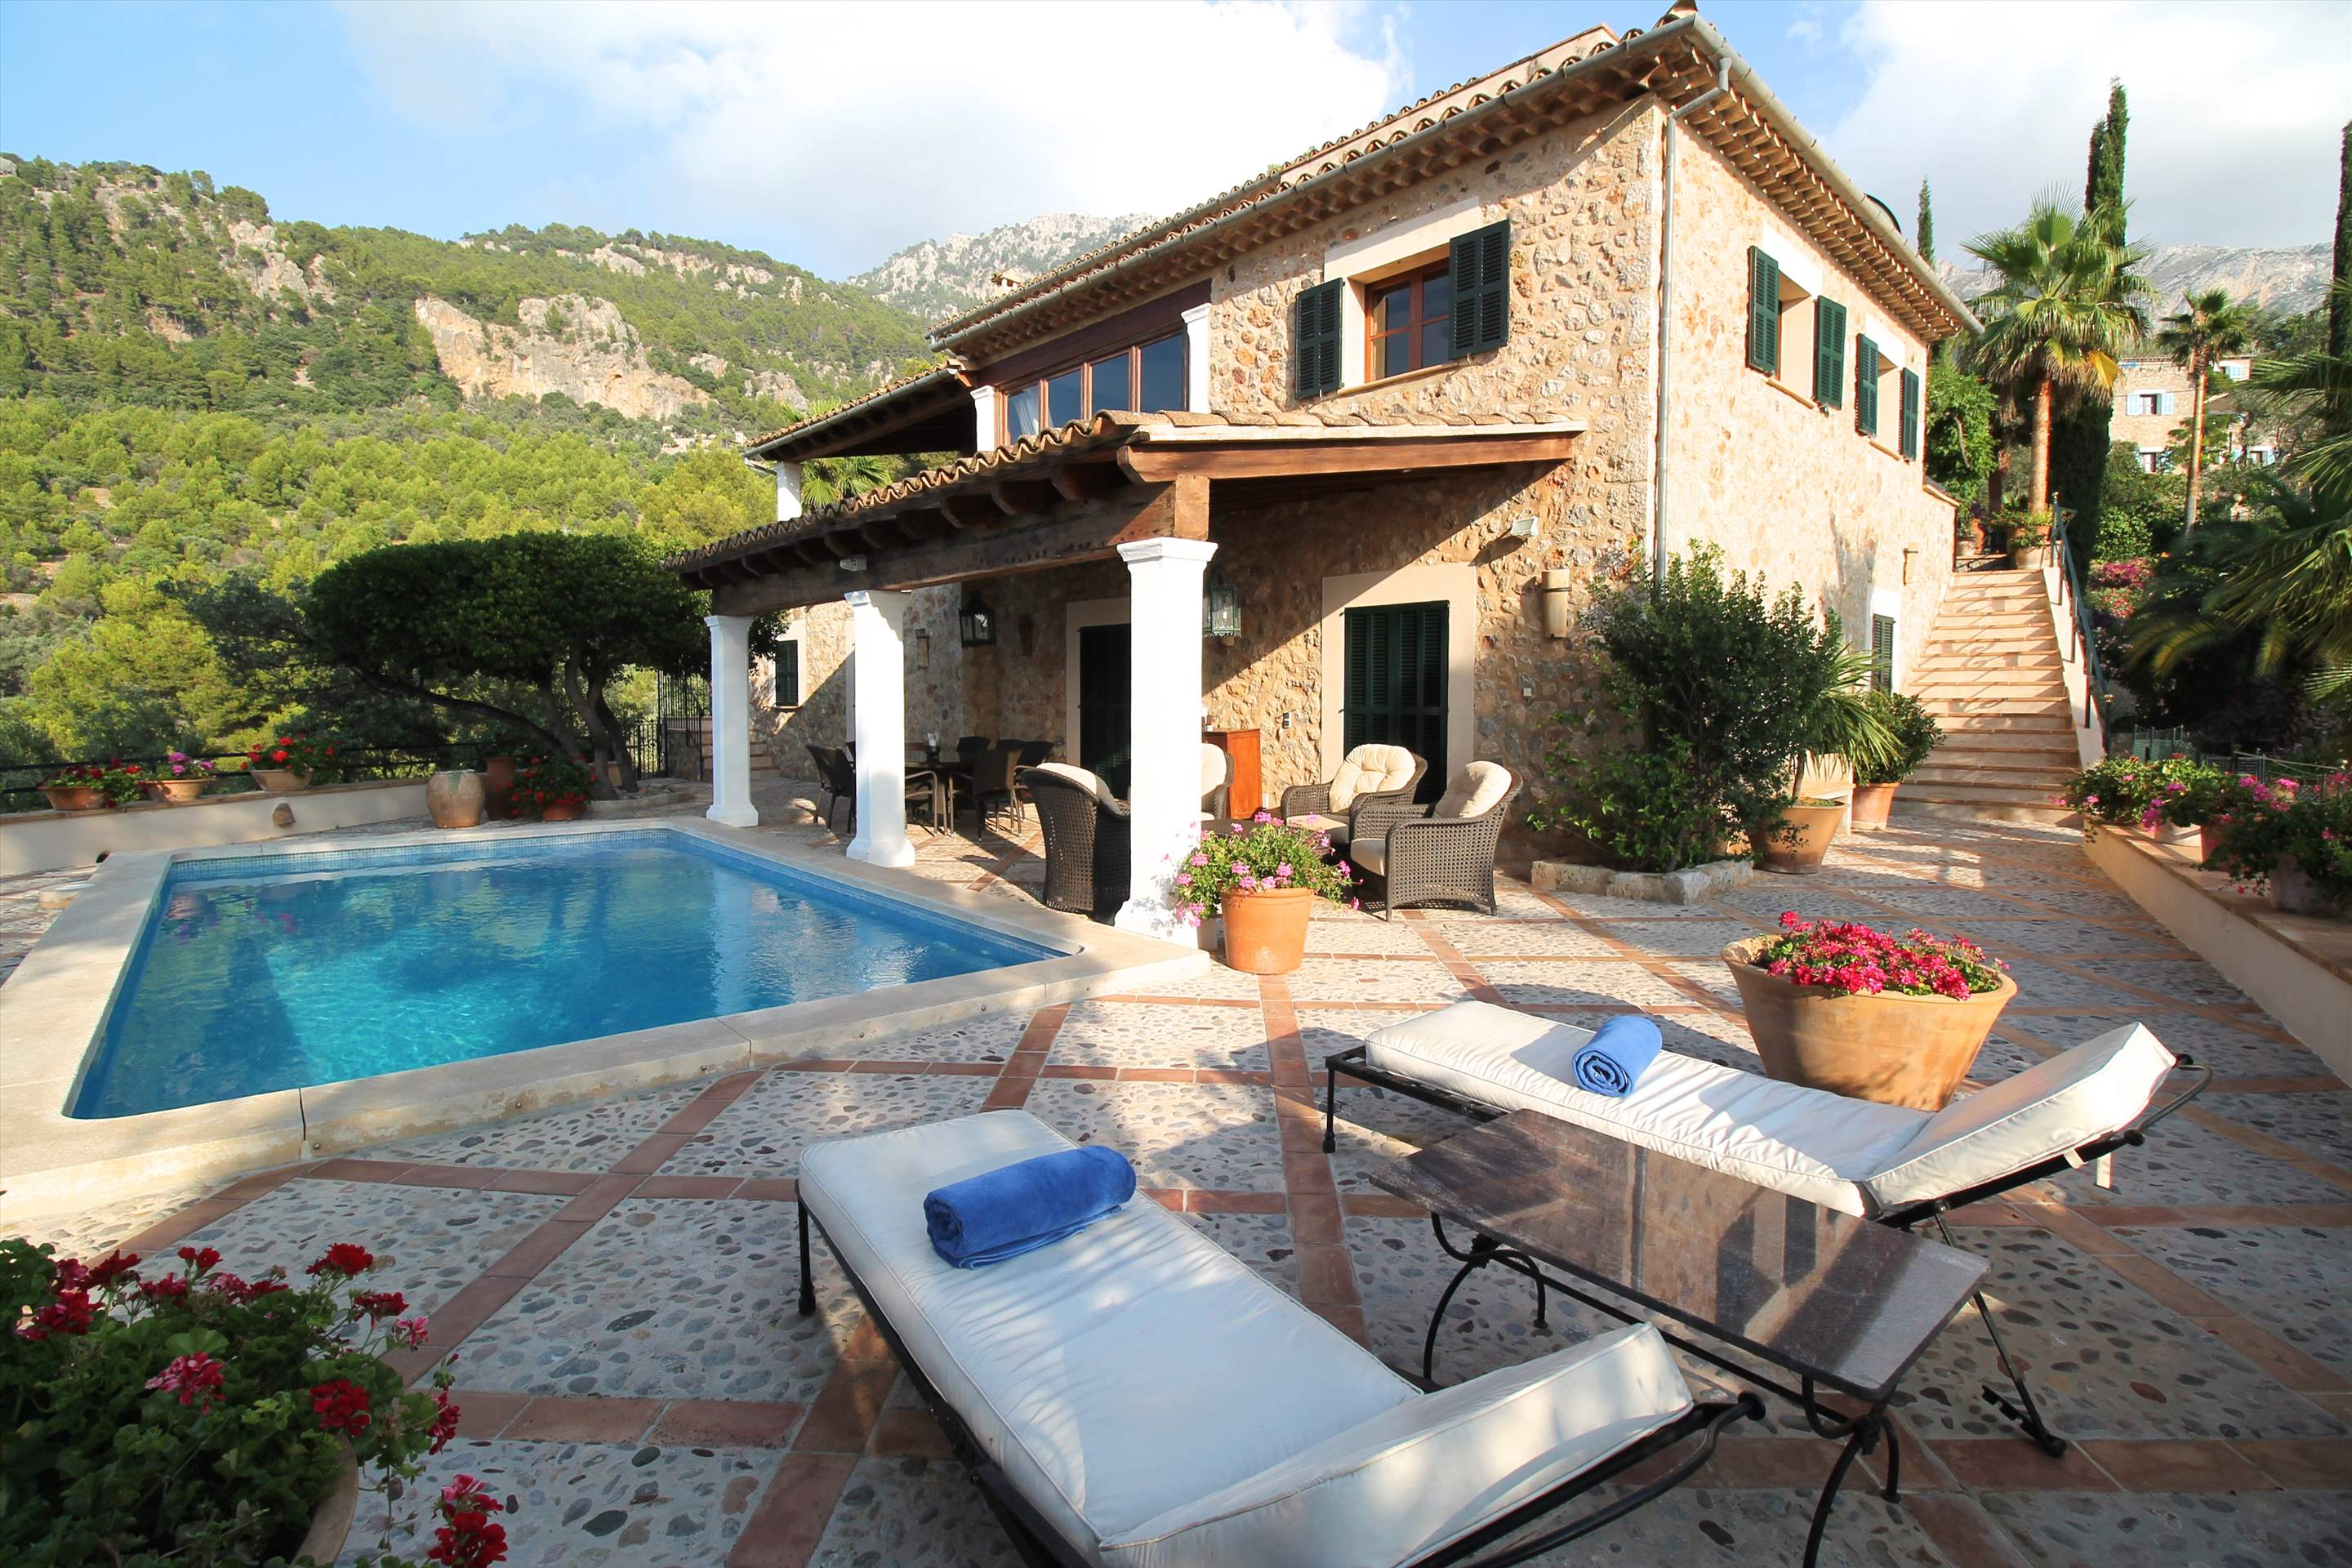 Can Winando, 4 Bedroom Rental, 4 bedroom villa in Soller & Deia, Majorca Photo #1